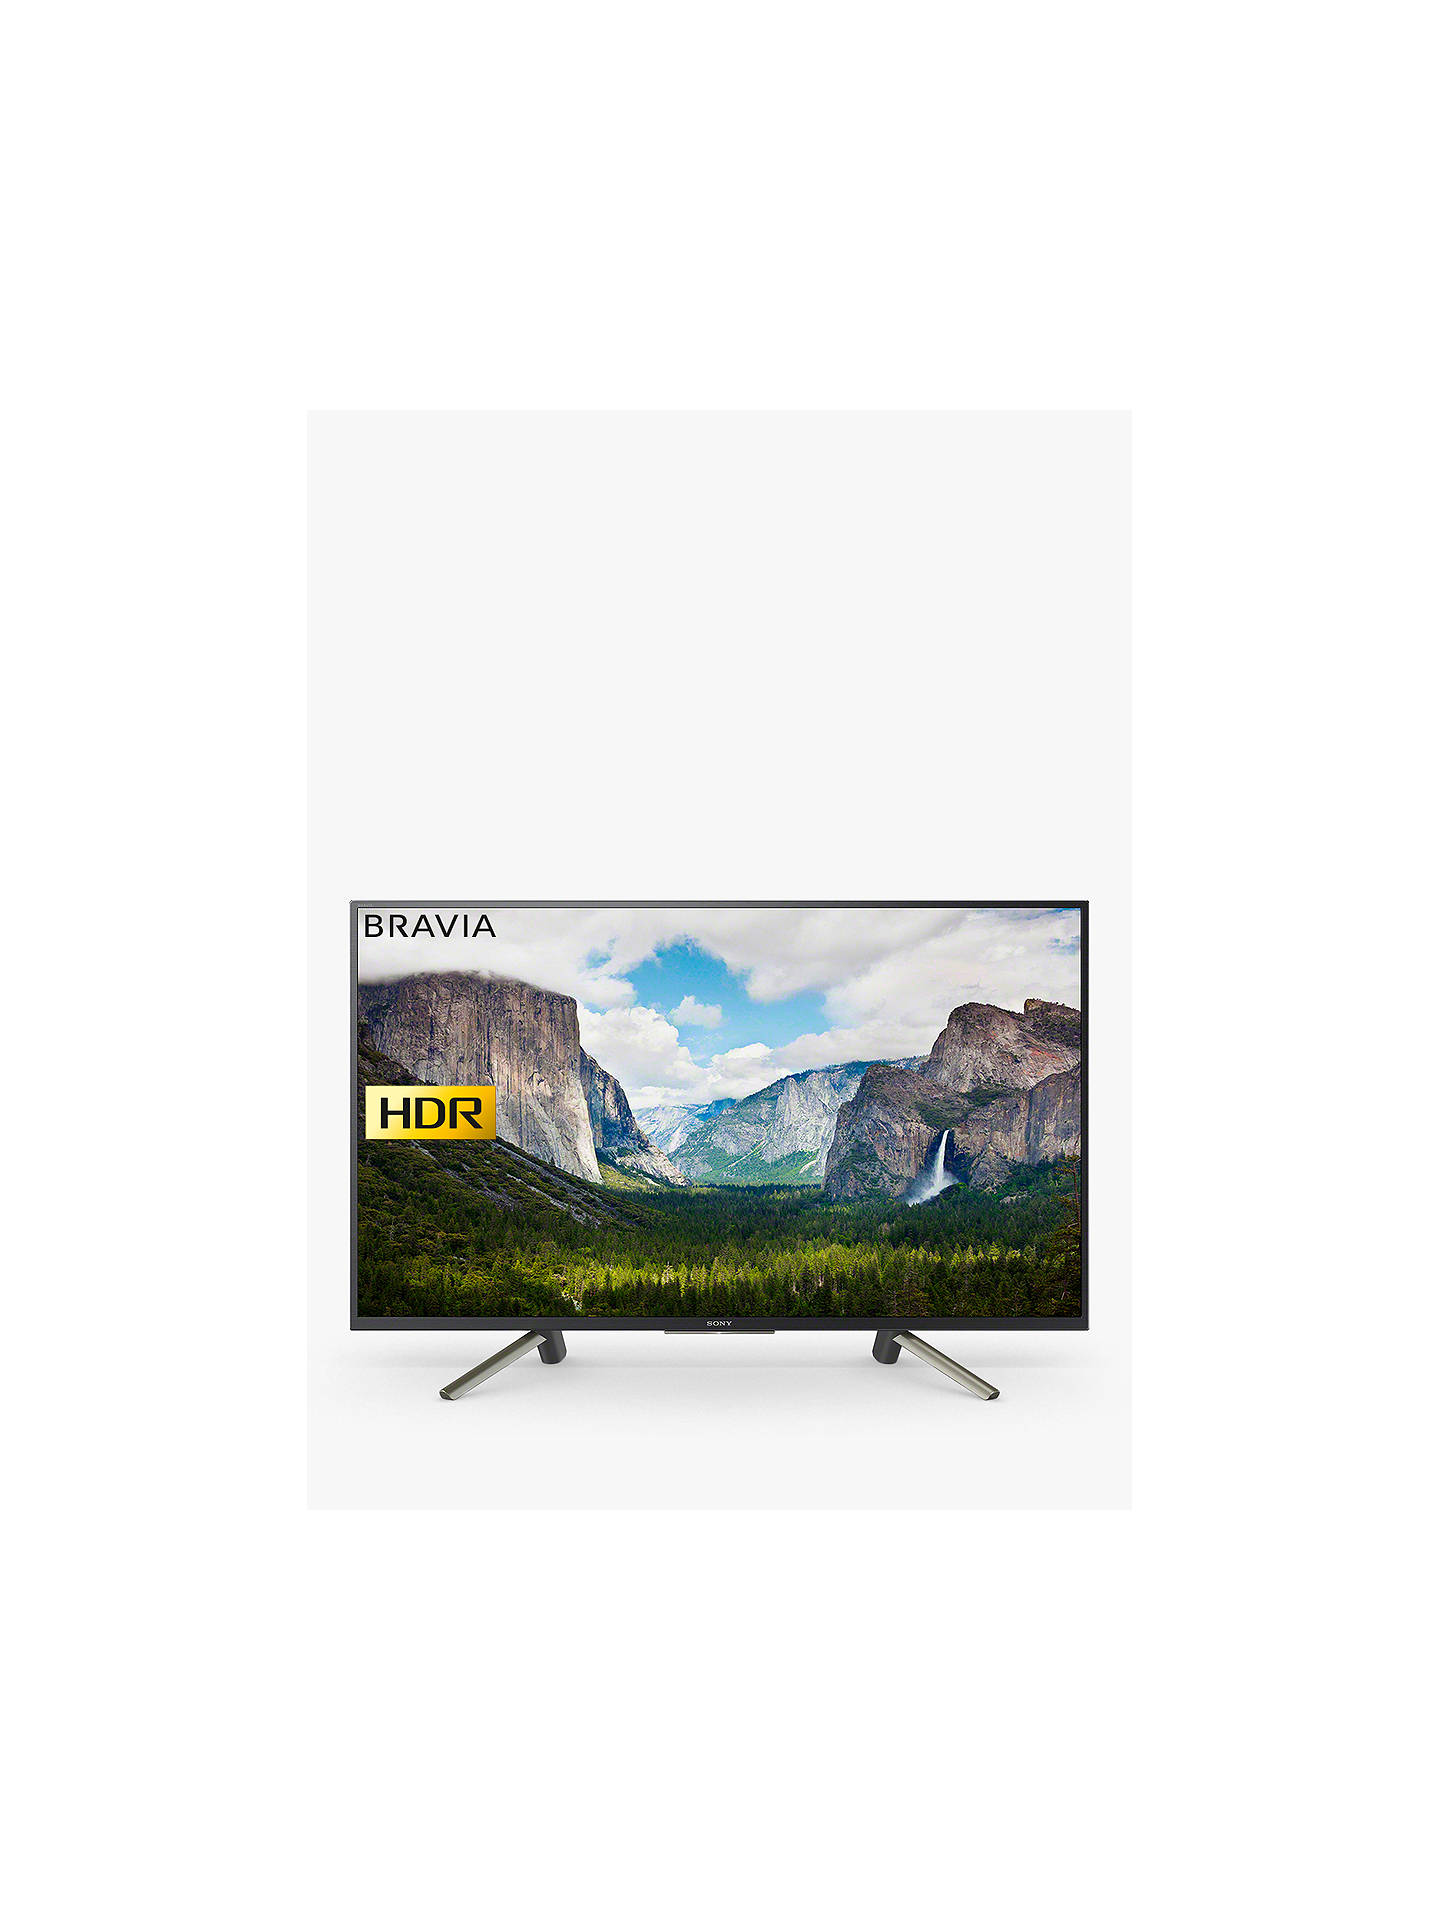 Sony Bravia KDL43WF663 LED HDR Full HD 1080p Smart TV, 43